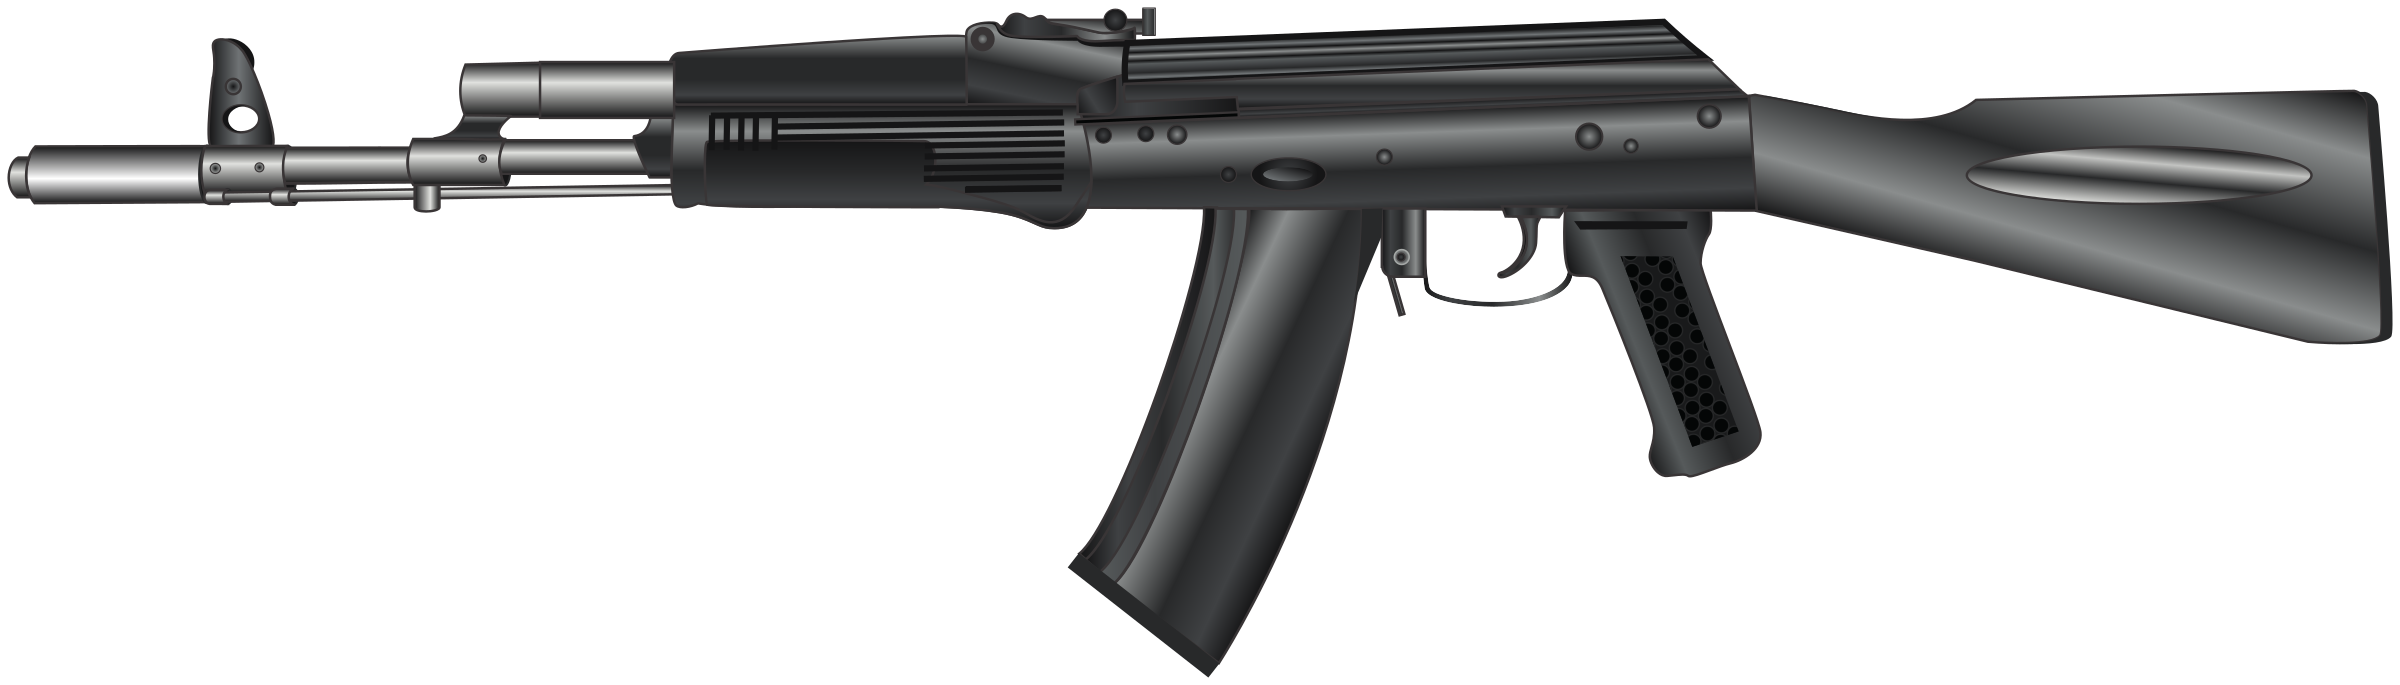 clipart black and white vector firearm 5.56 #107825322